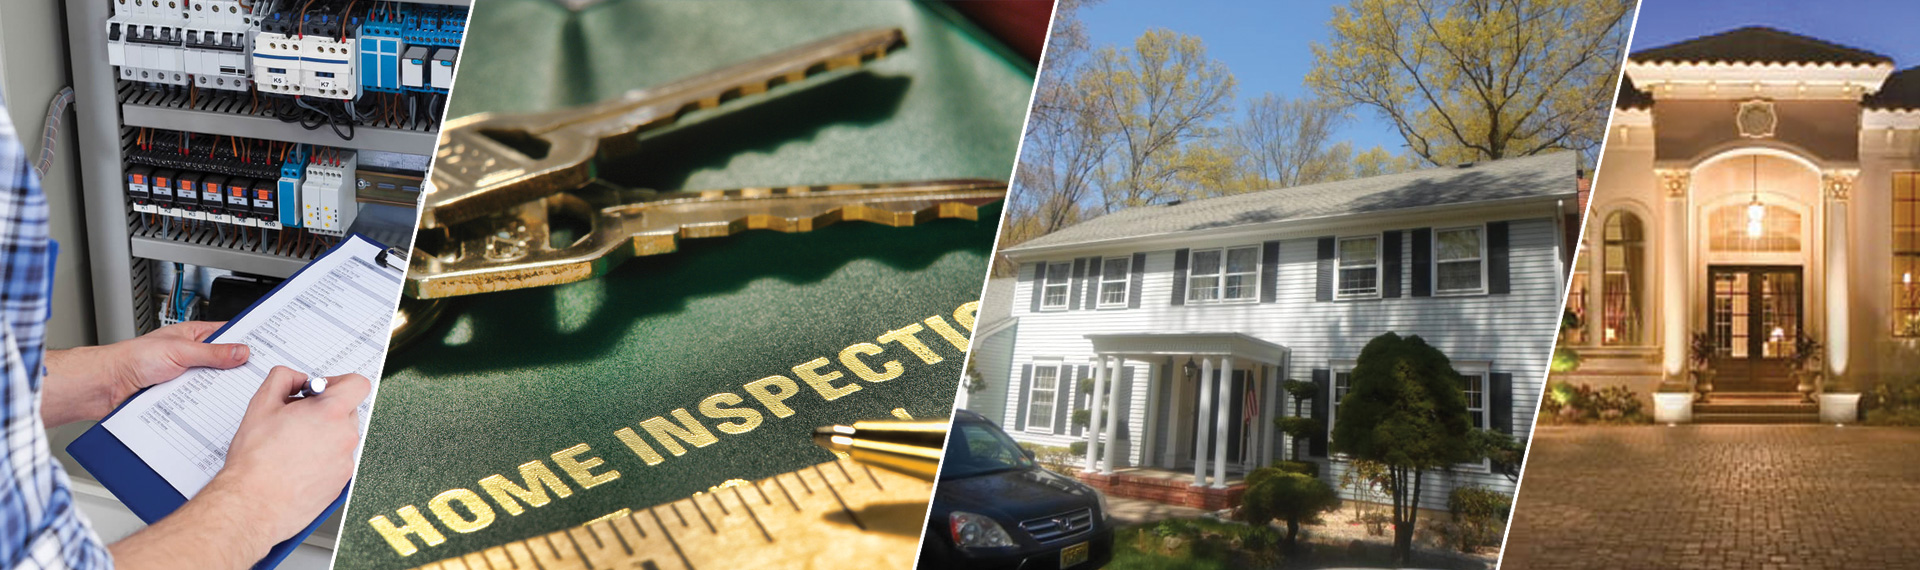 AAA House Doctors Engineers & Home Inspectors South River NJ